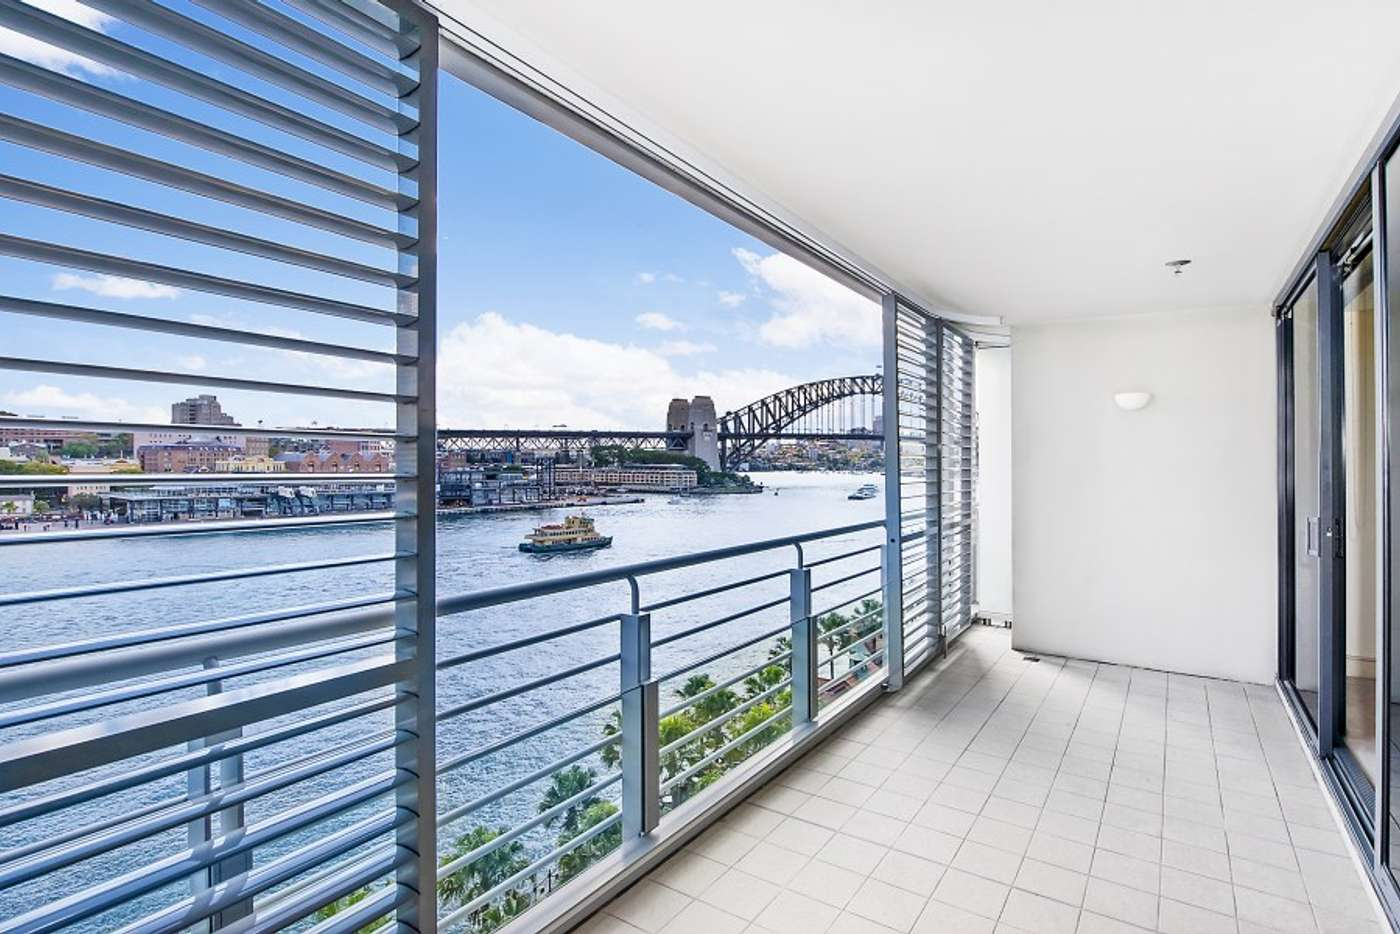 Main view of Homely apartment listing, 63/3 Macquarie Street, Sydney NSW 2000